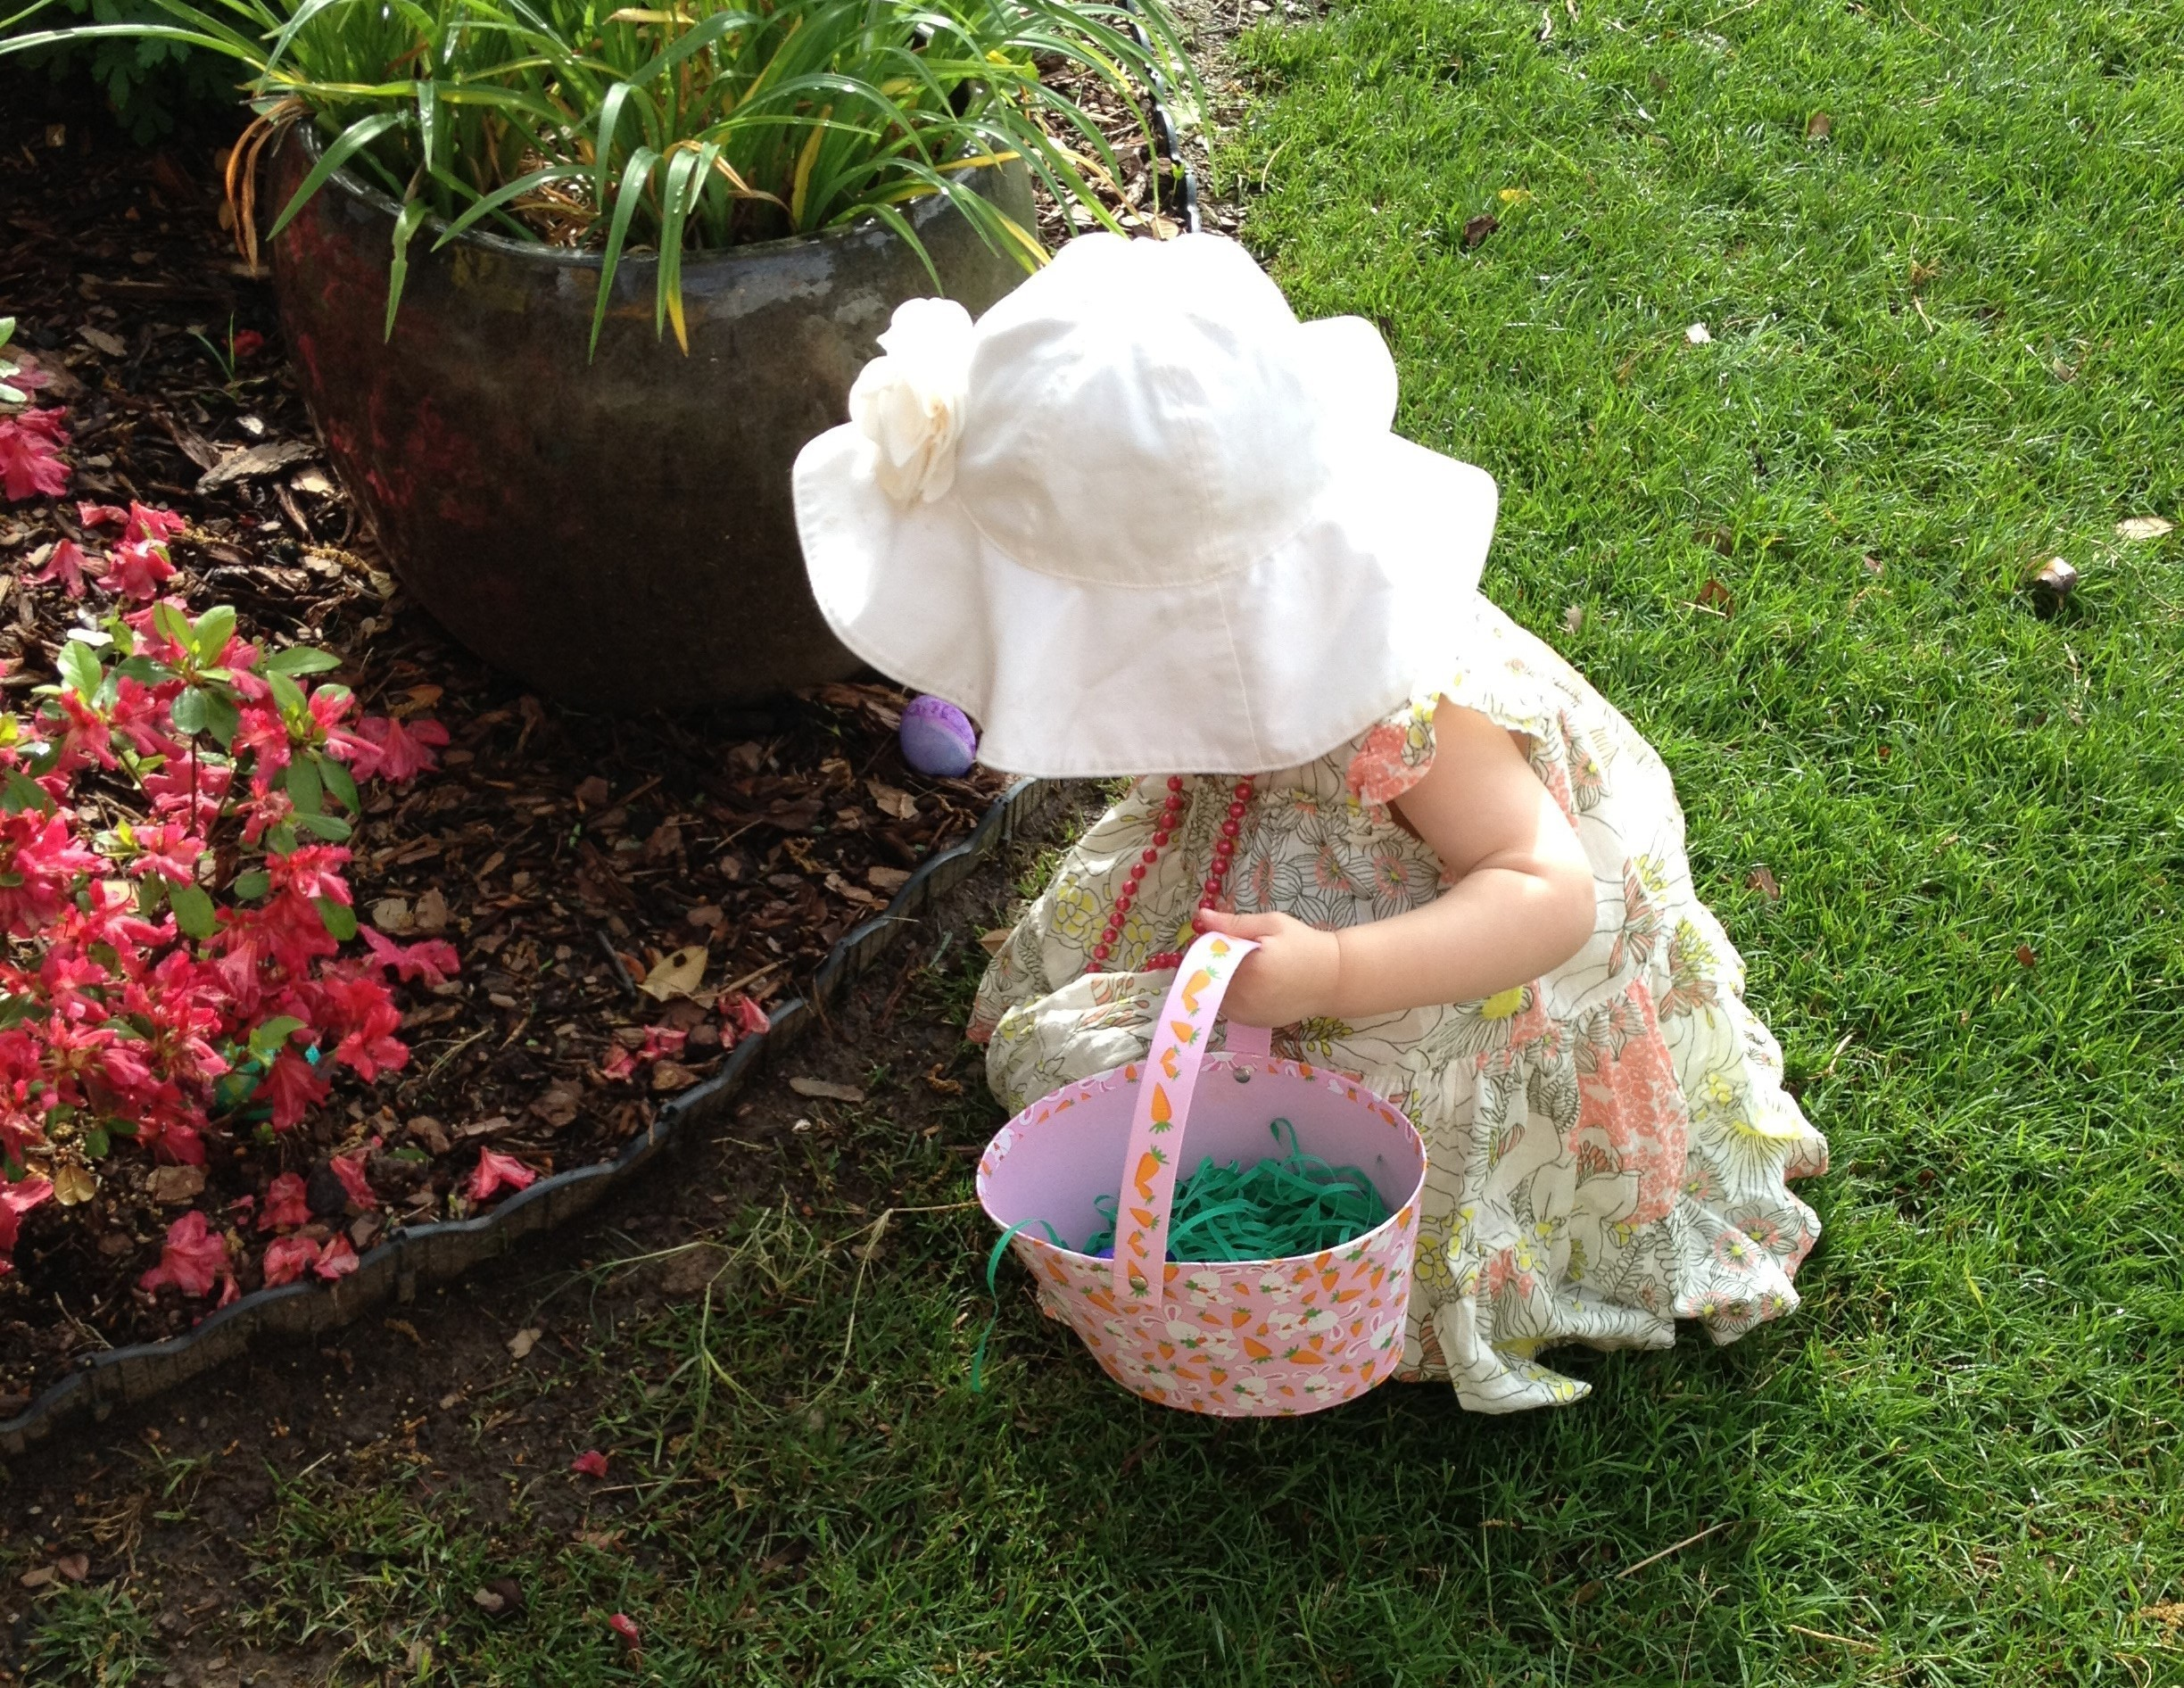 Top 13 childrens easter events in melbourne 2017 melbourne easter easter events in melbourne easter show easter egg hunt easter bunny negle Gallery